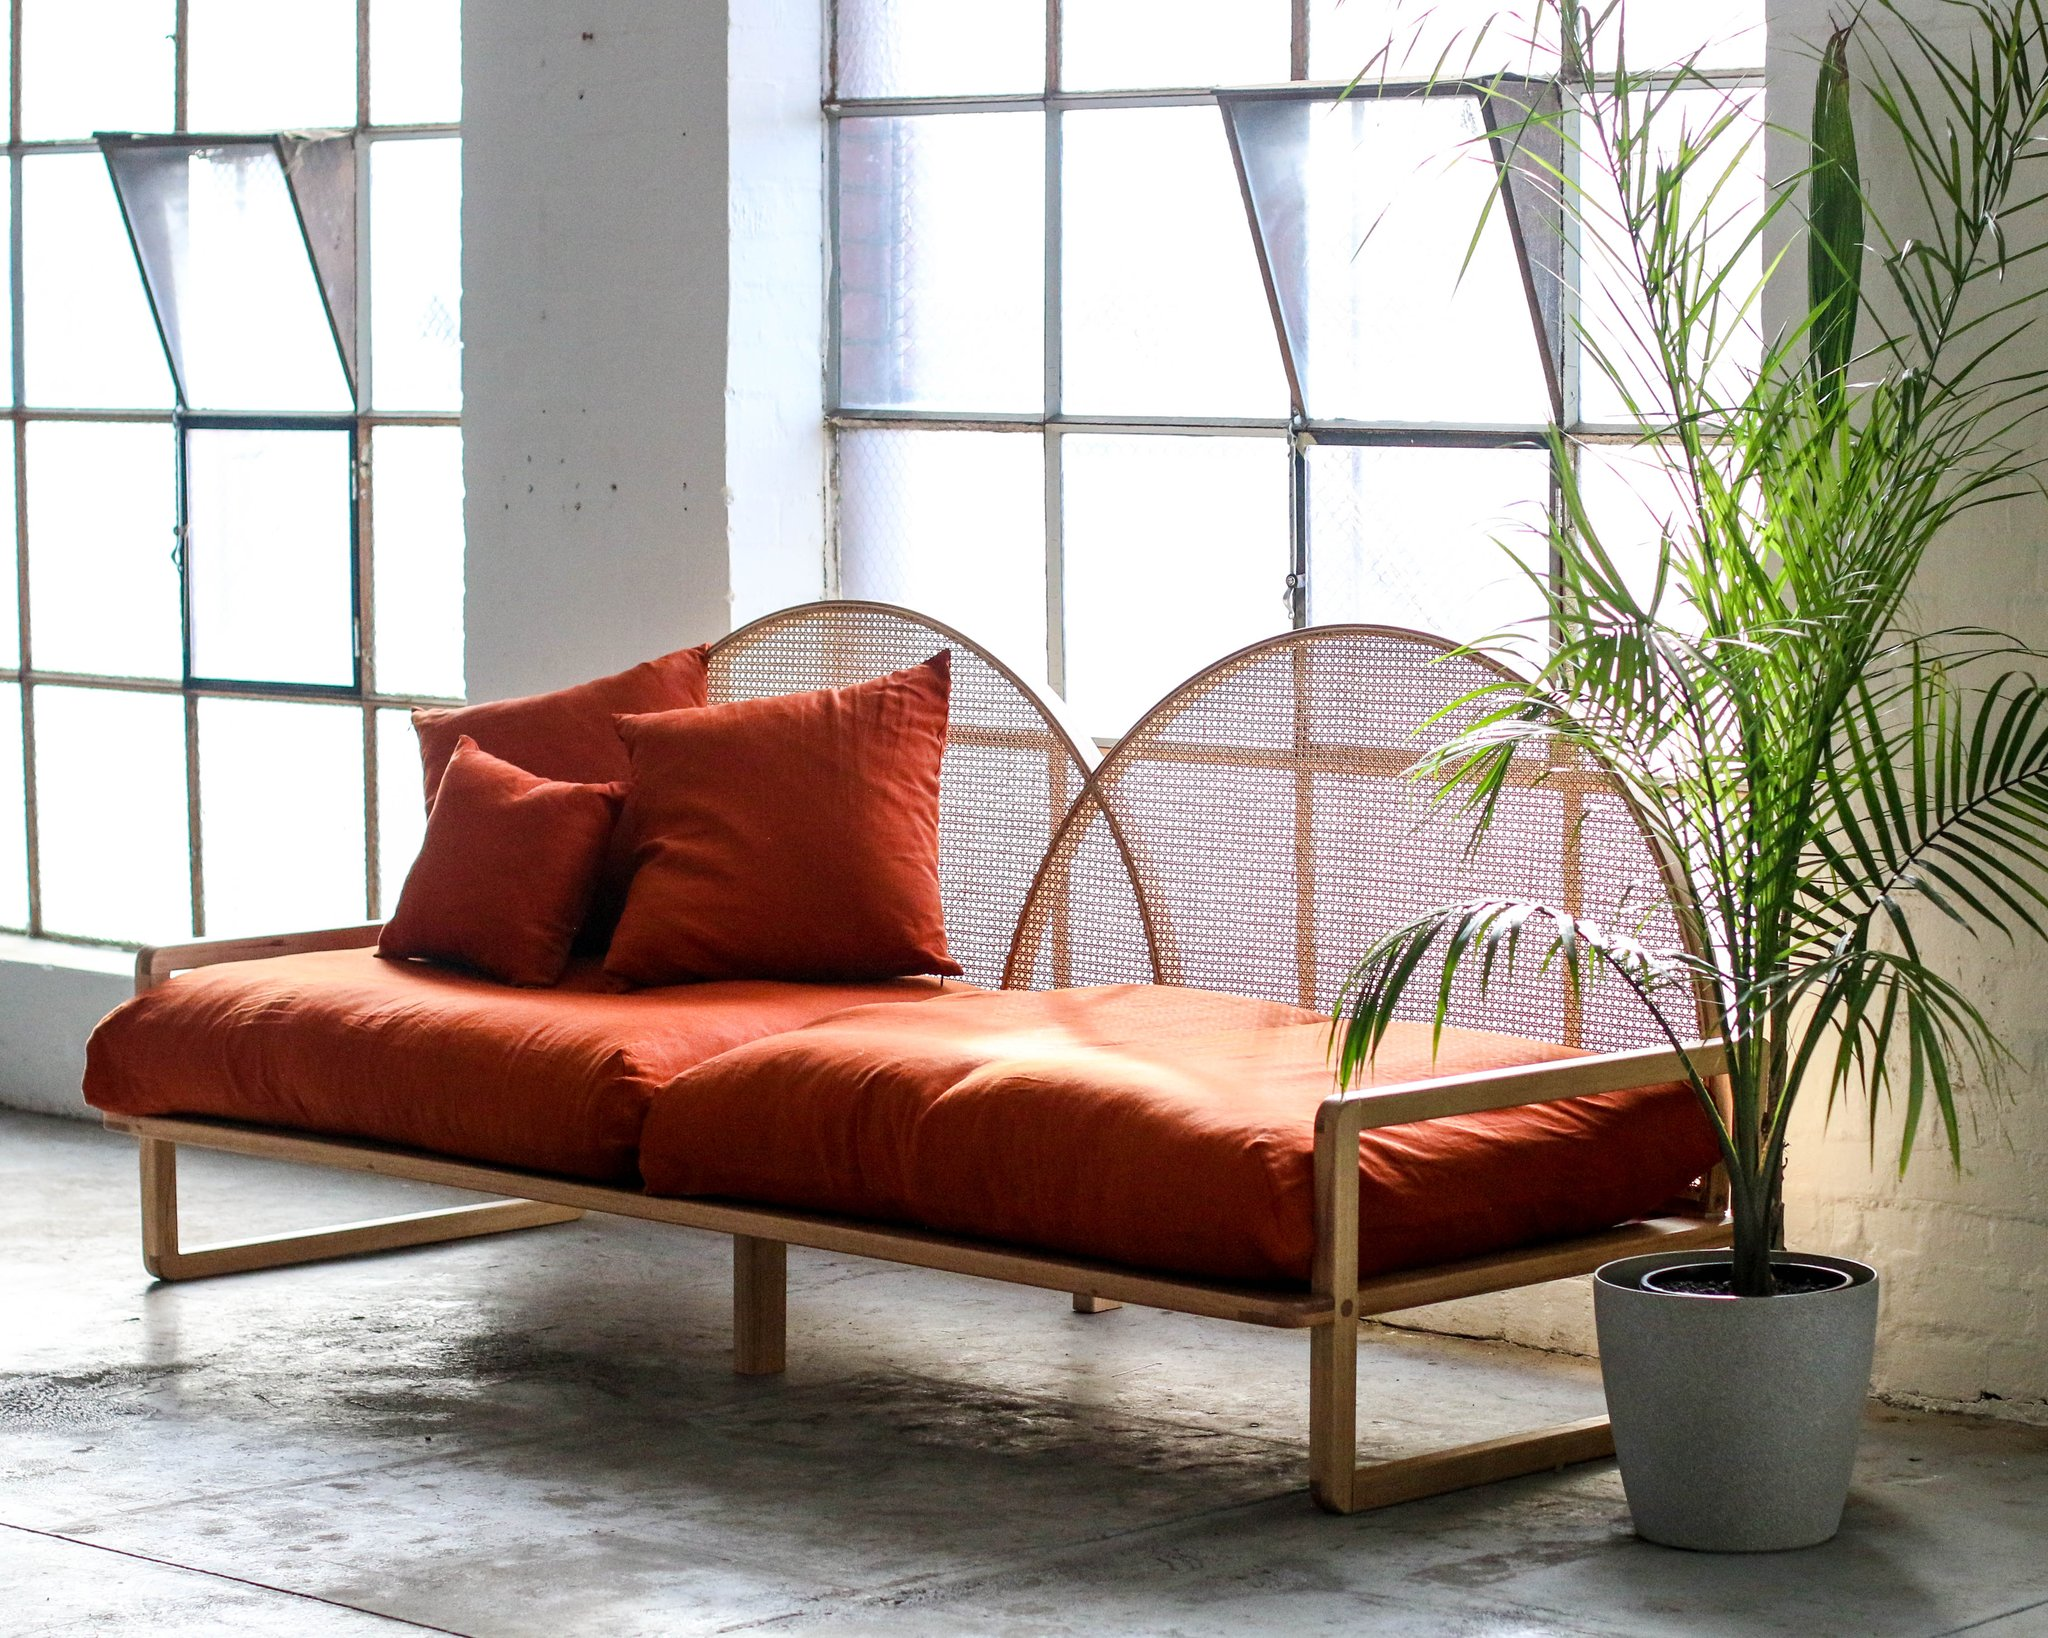 The Lucie Lounge Balances The Textures Of Australian Messmate